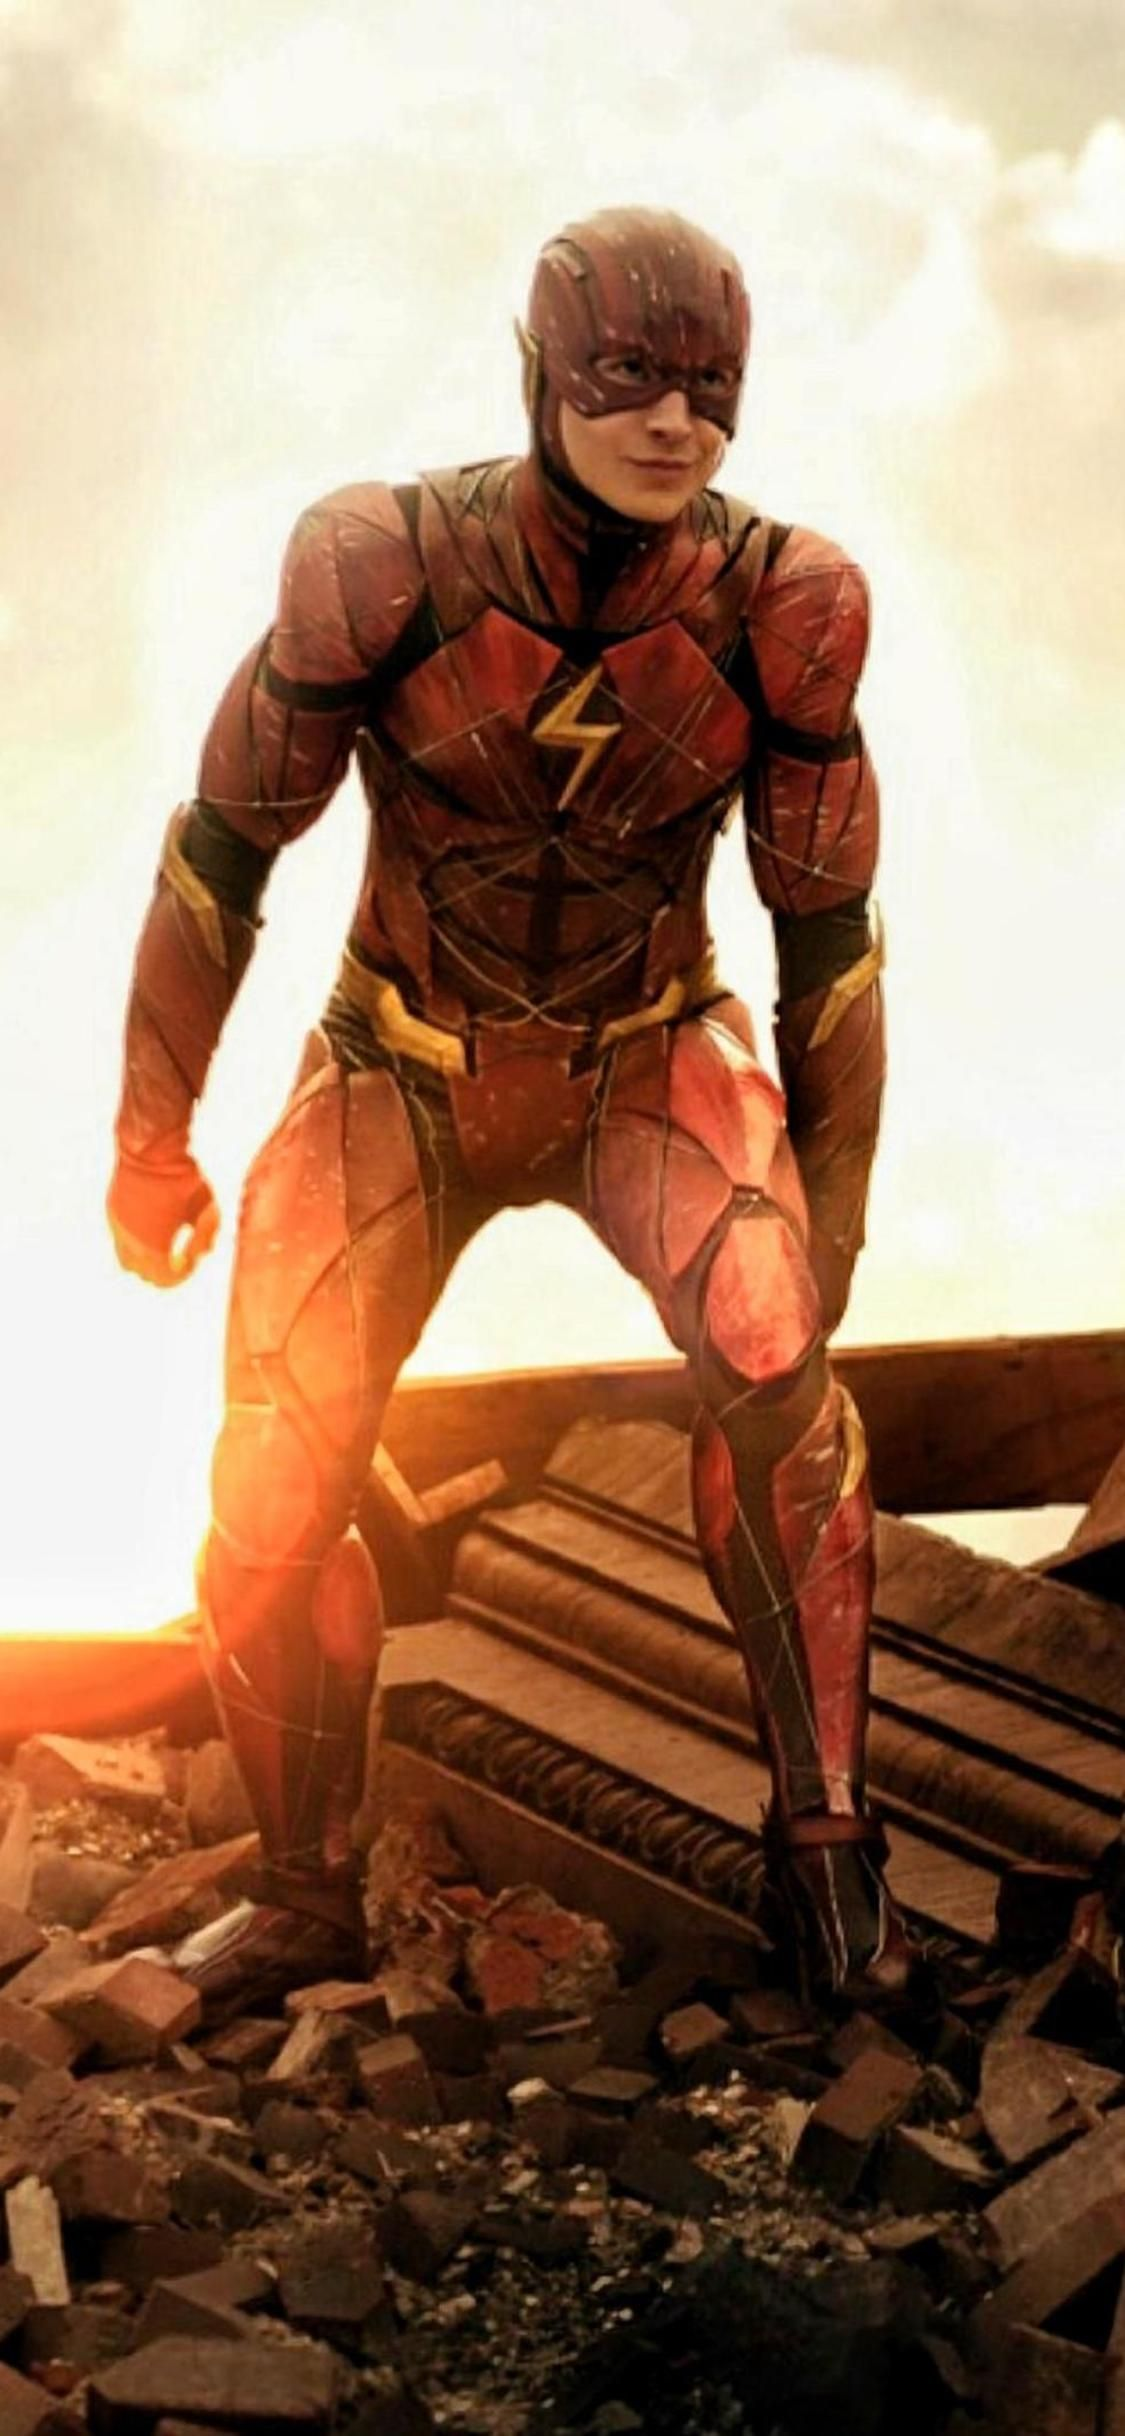 1125x2436 Flash Justice League New Iphone XS,Iphone 10